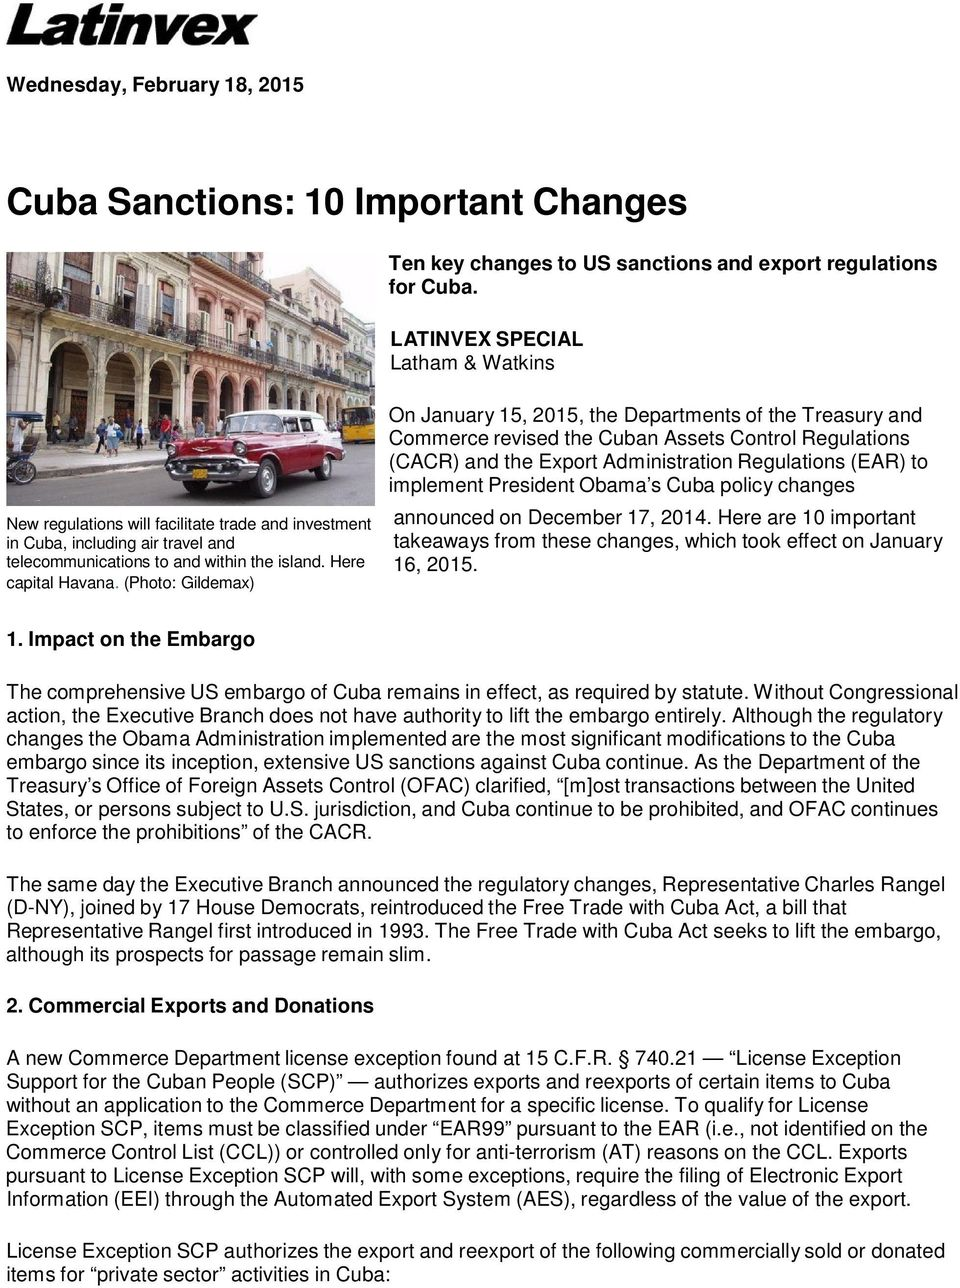 (Photo: Gildemax) On January 15, 2015, the Departments of the Treasury and Commerce revised the Cuban Assets Control Regulations (CACR) and the Export Administration Regulations (EAR) to implement